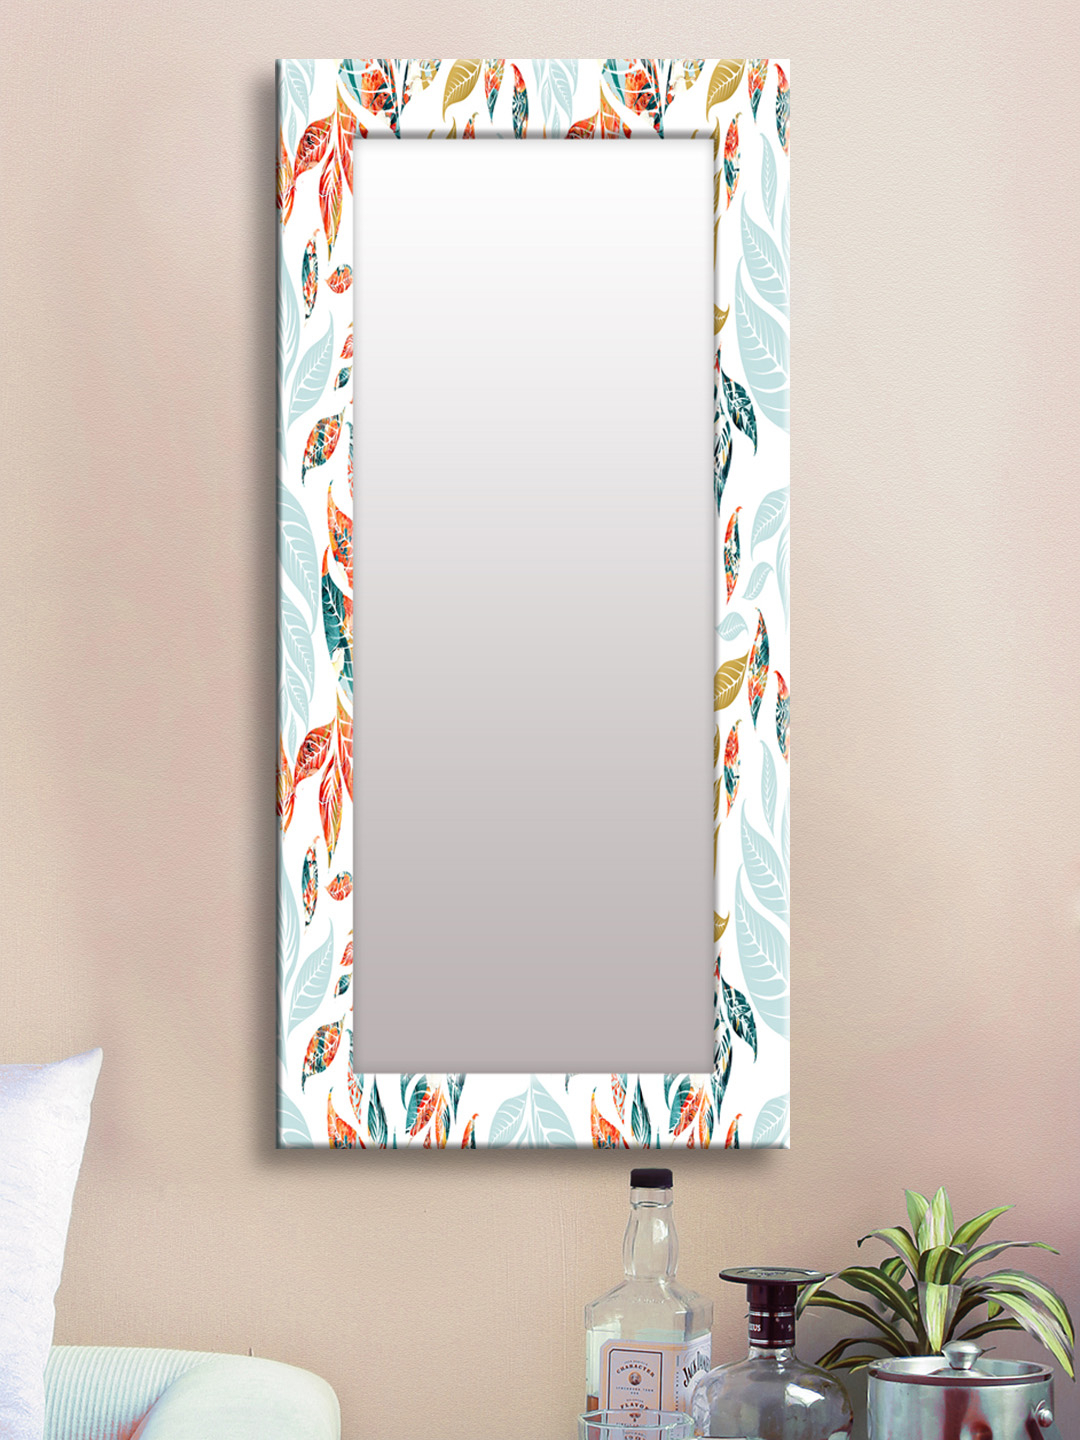 Most Popular Buy 999store White & Orange Framed Wall Mirror – Mirrors For Unisex Intended For Orange Framed Wall Mirrors (View 3 of 20)